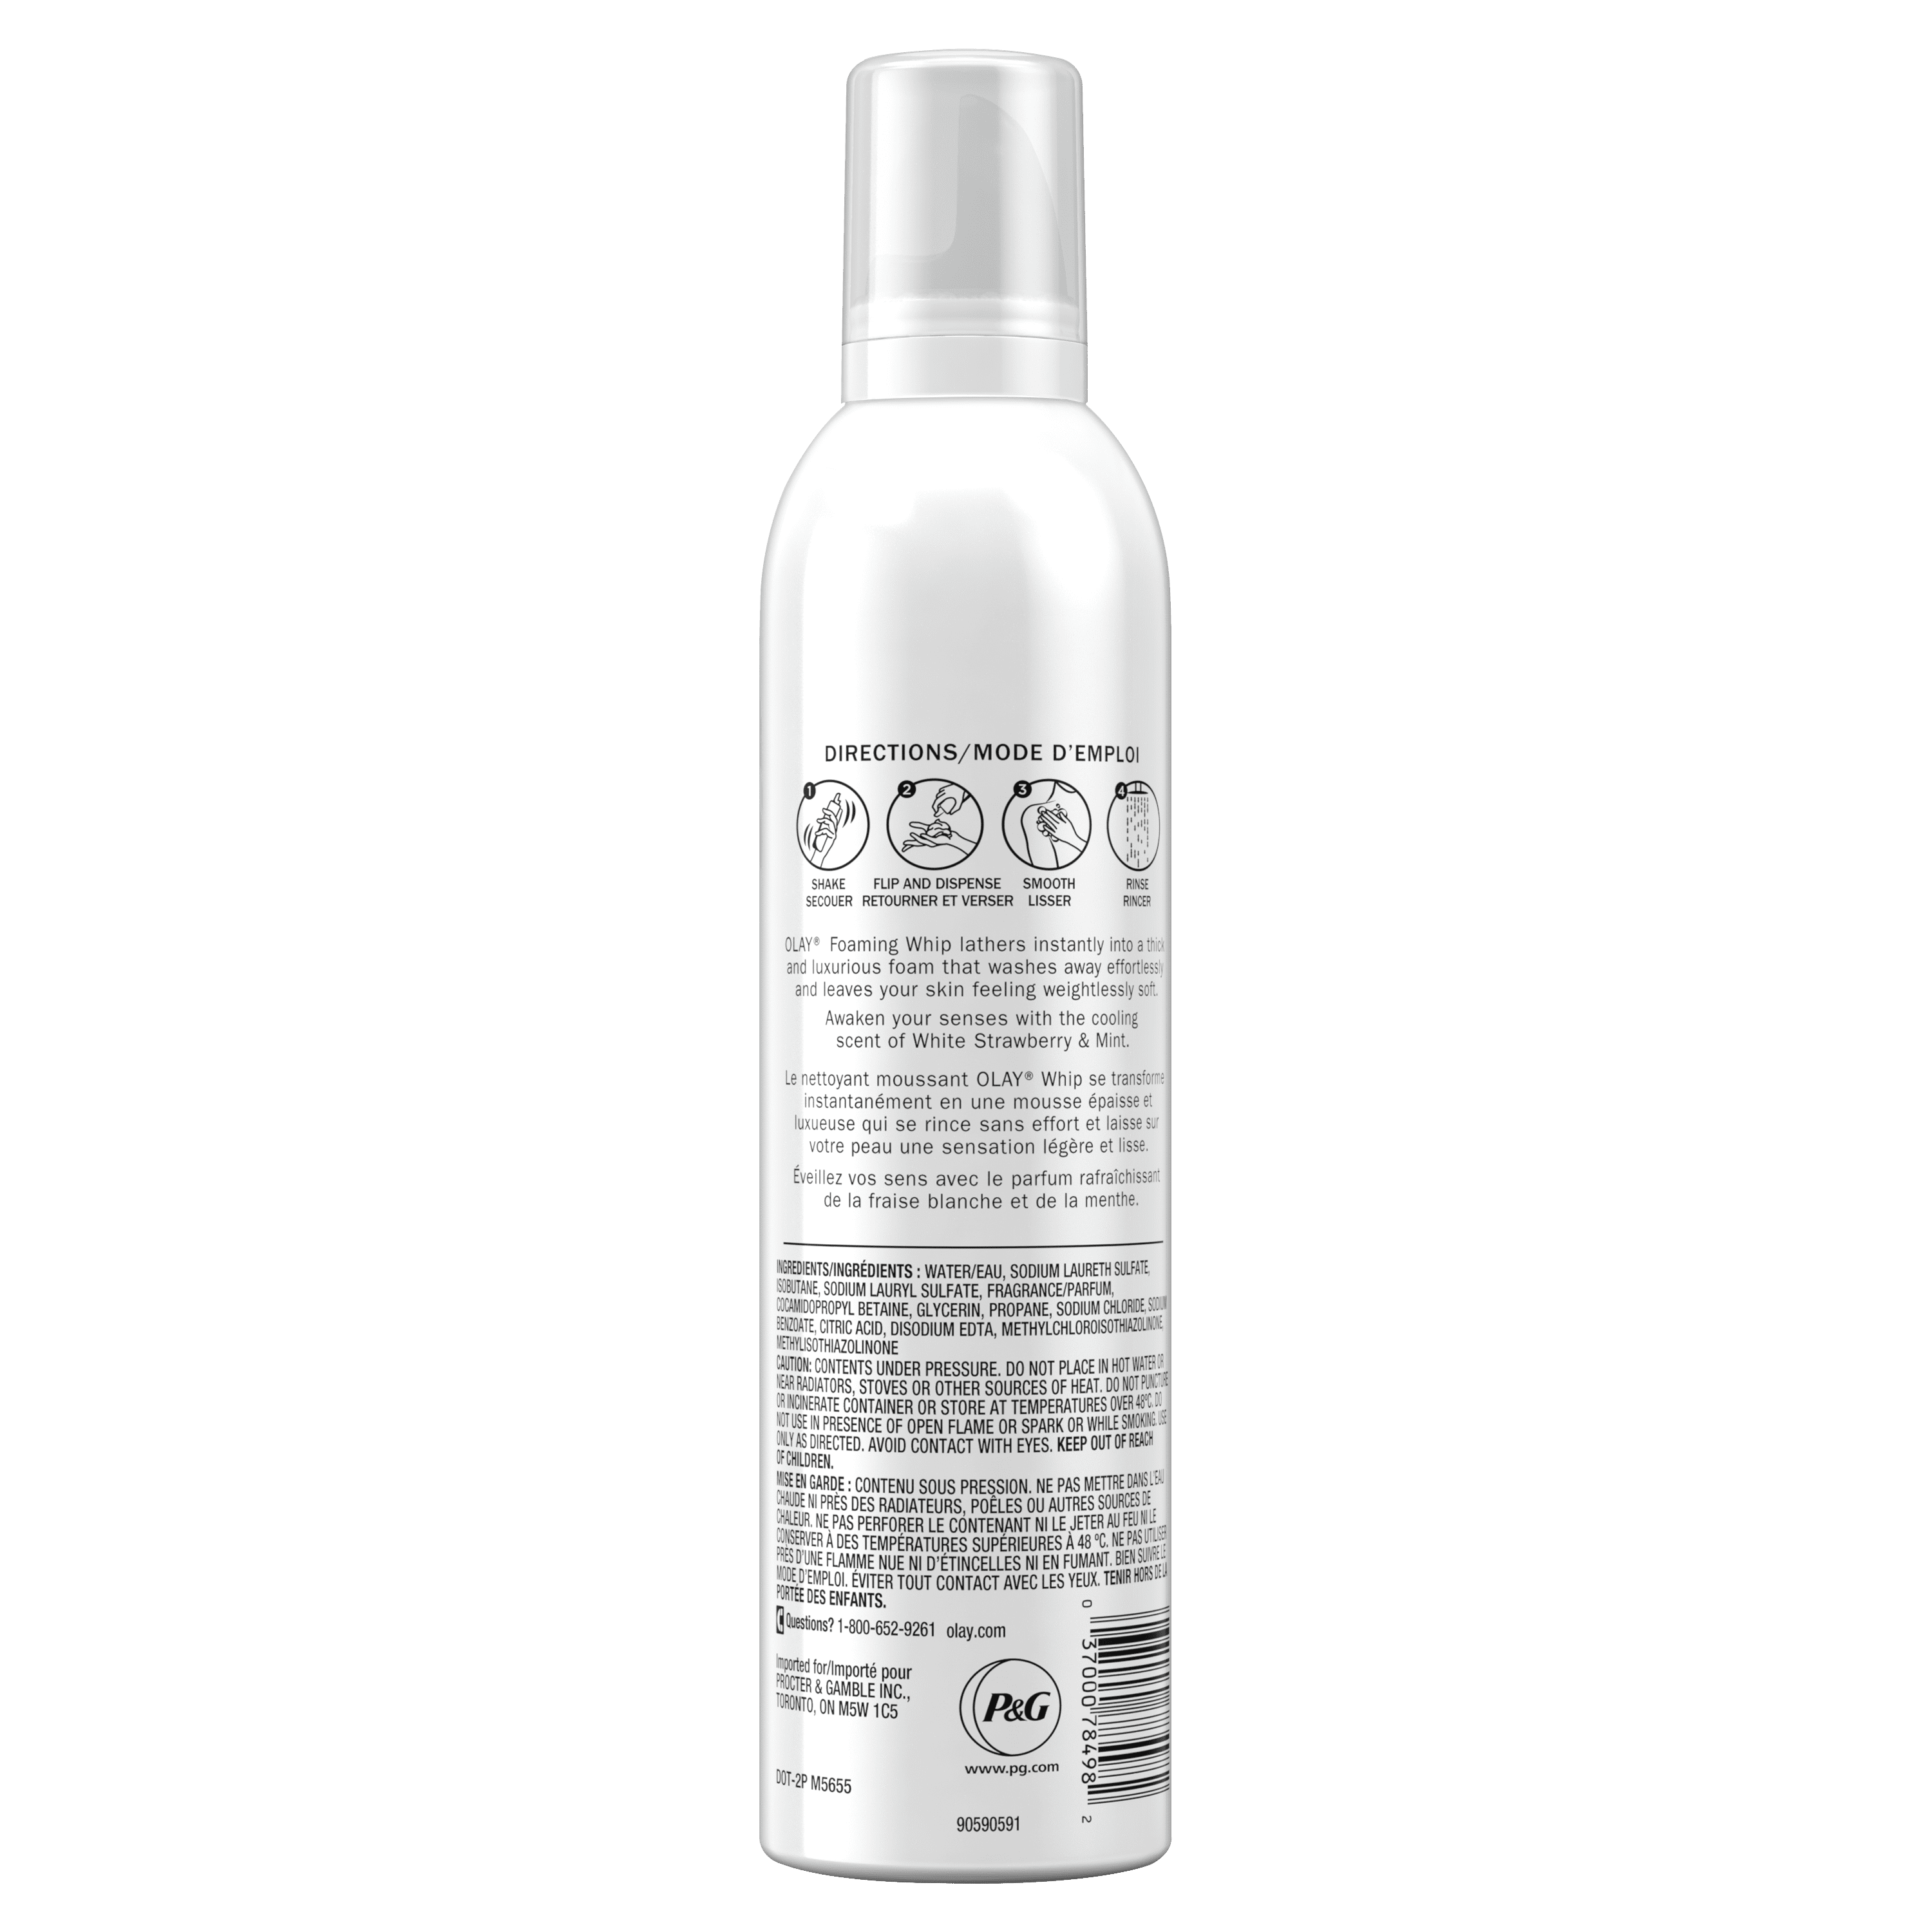 White Strawberry and Mint Scent Foaming Whip Body Wash_3